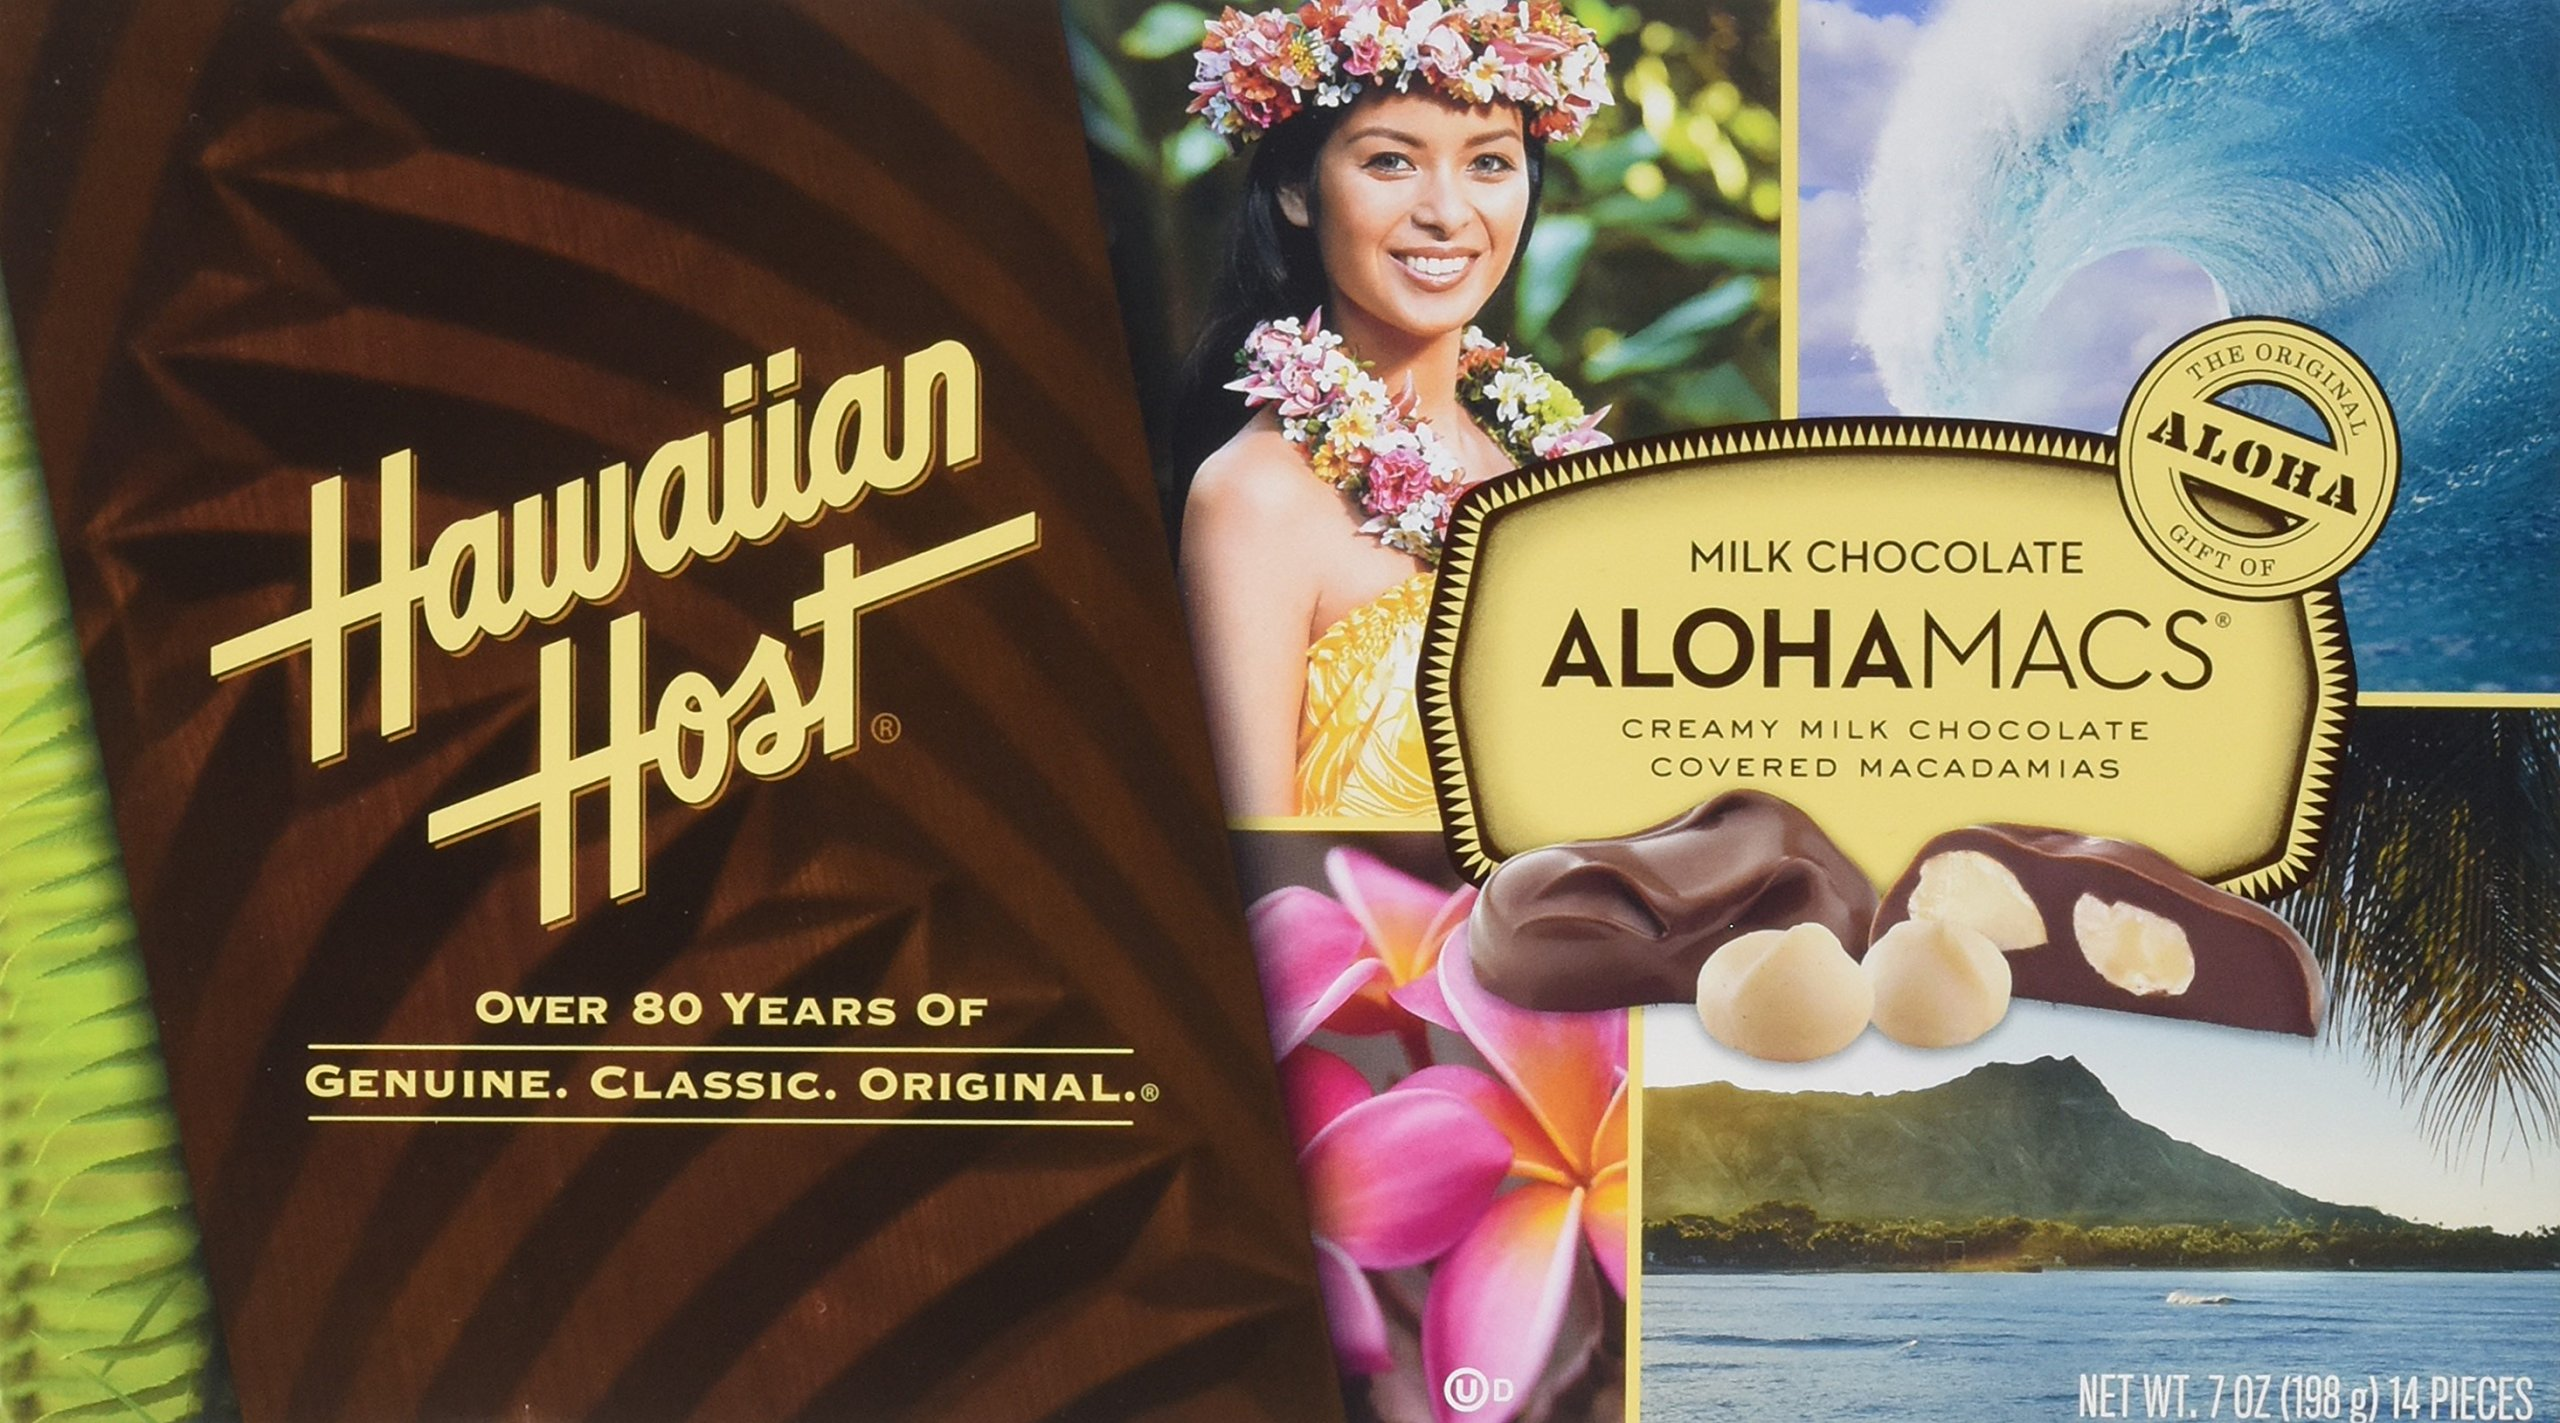 Hawaiian Host Aloha Macs Milk Chocolate Macadamia Nuts (7 ounce box, 14 pieces) (1 Box) by Hawaiian Host (Image #1)